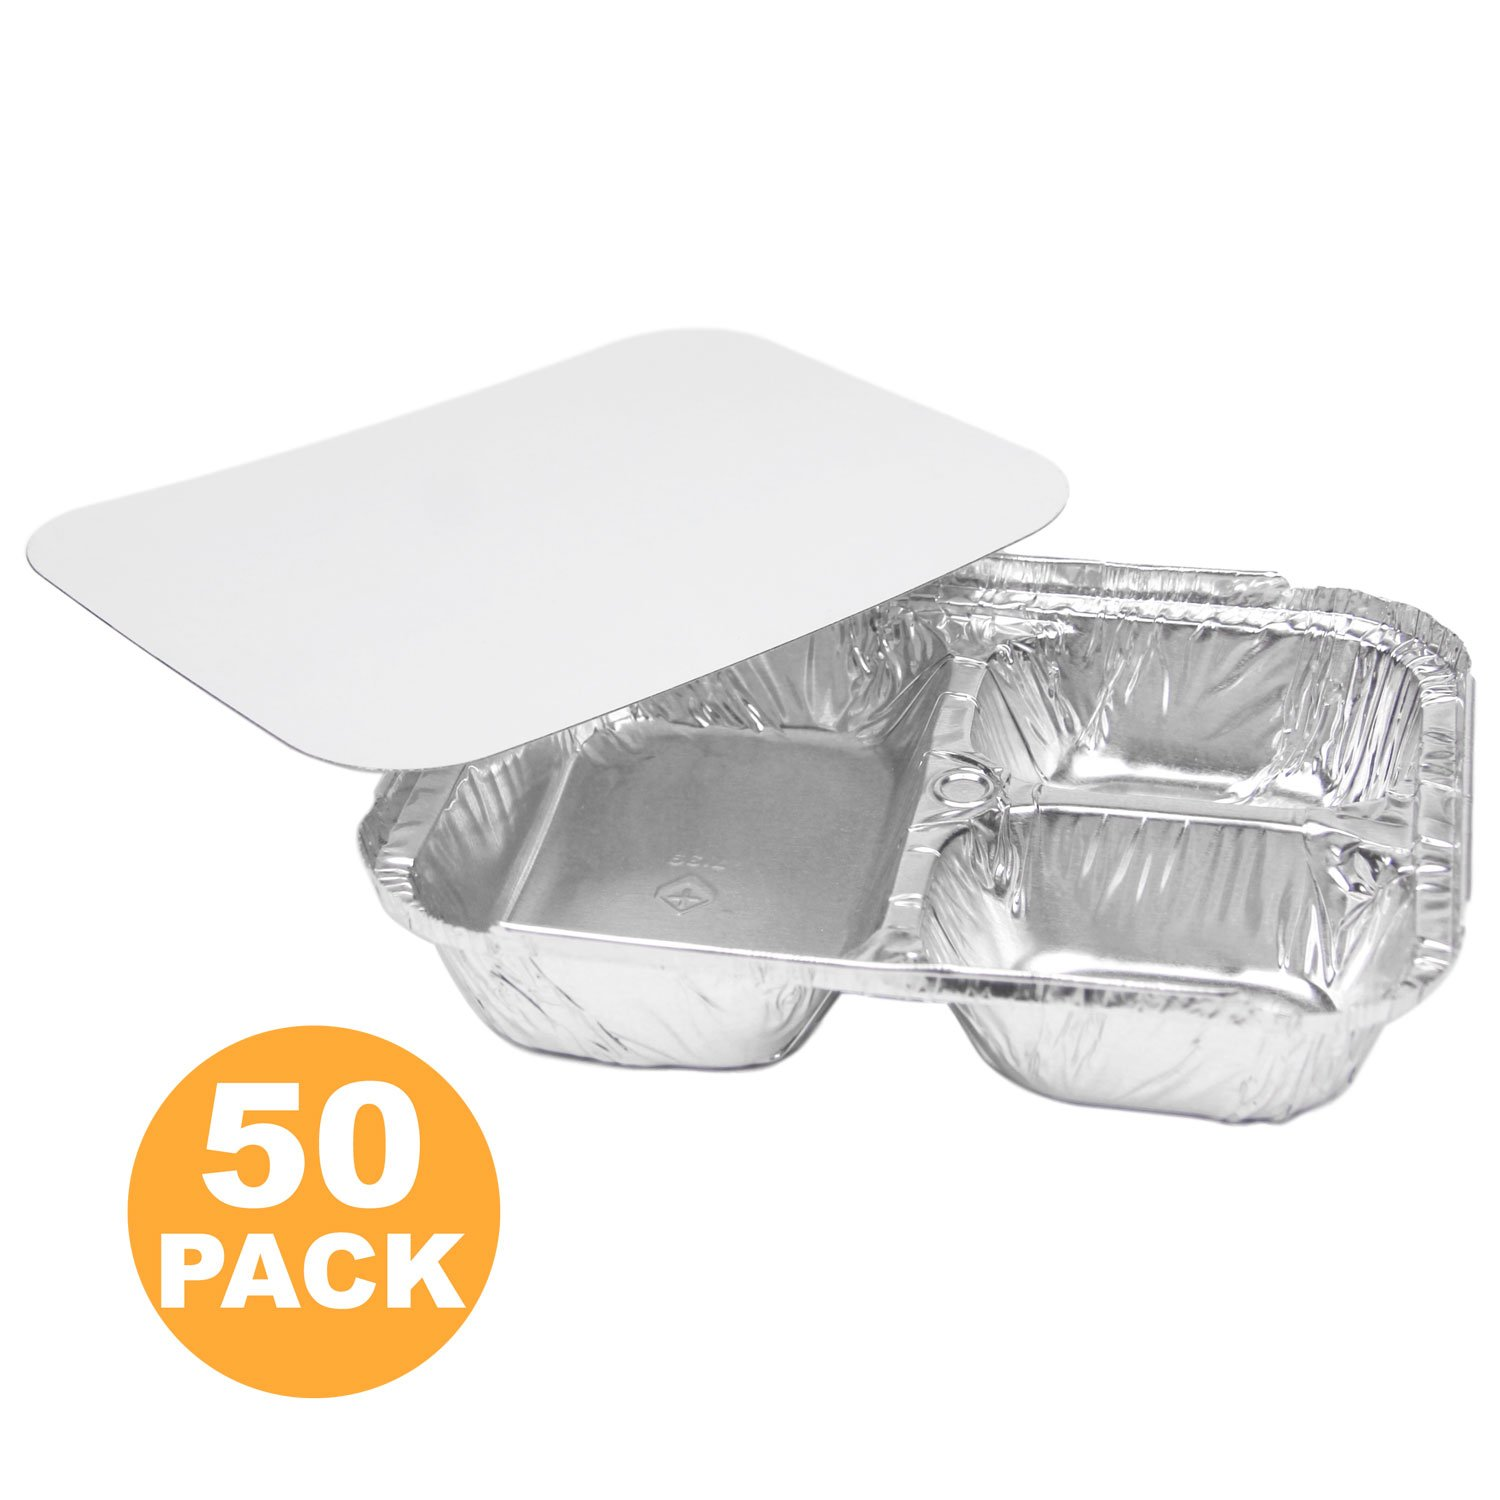 "3 Compartment 8.5 x 6.5 x 1.5"" Rectangular Disposable Aluminum Foil Pan Take Out Food Containers with Flat Board Lids, Hot Cold Freezer Oven Safe [50 Pack]"